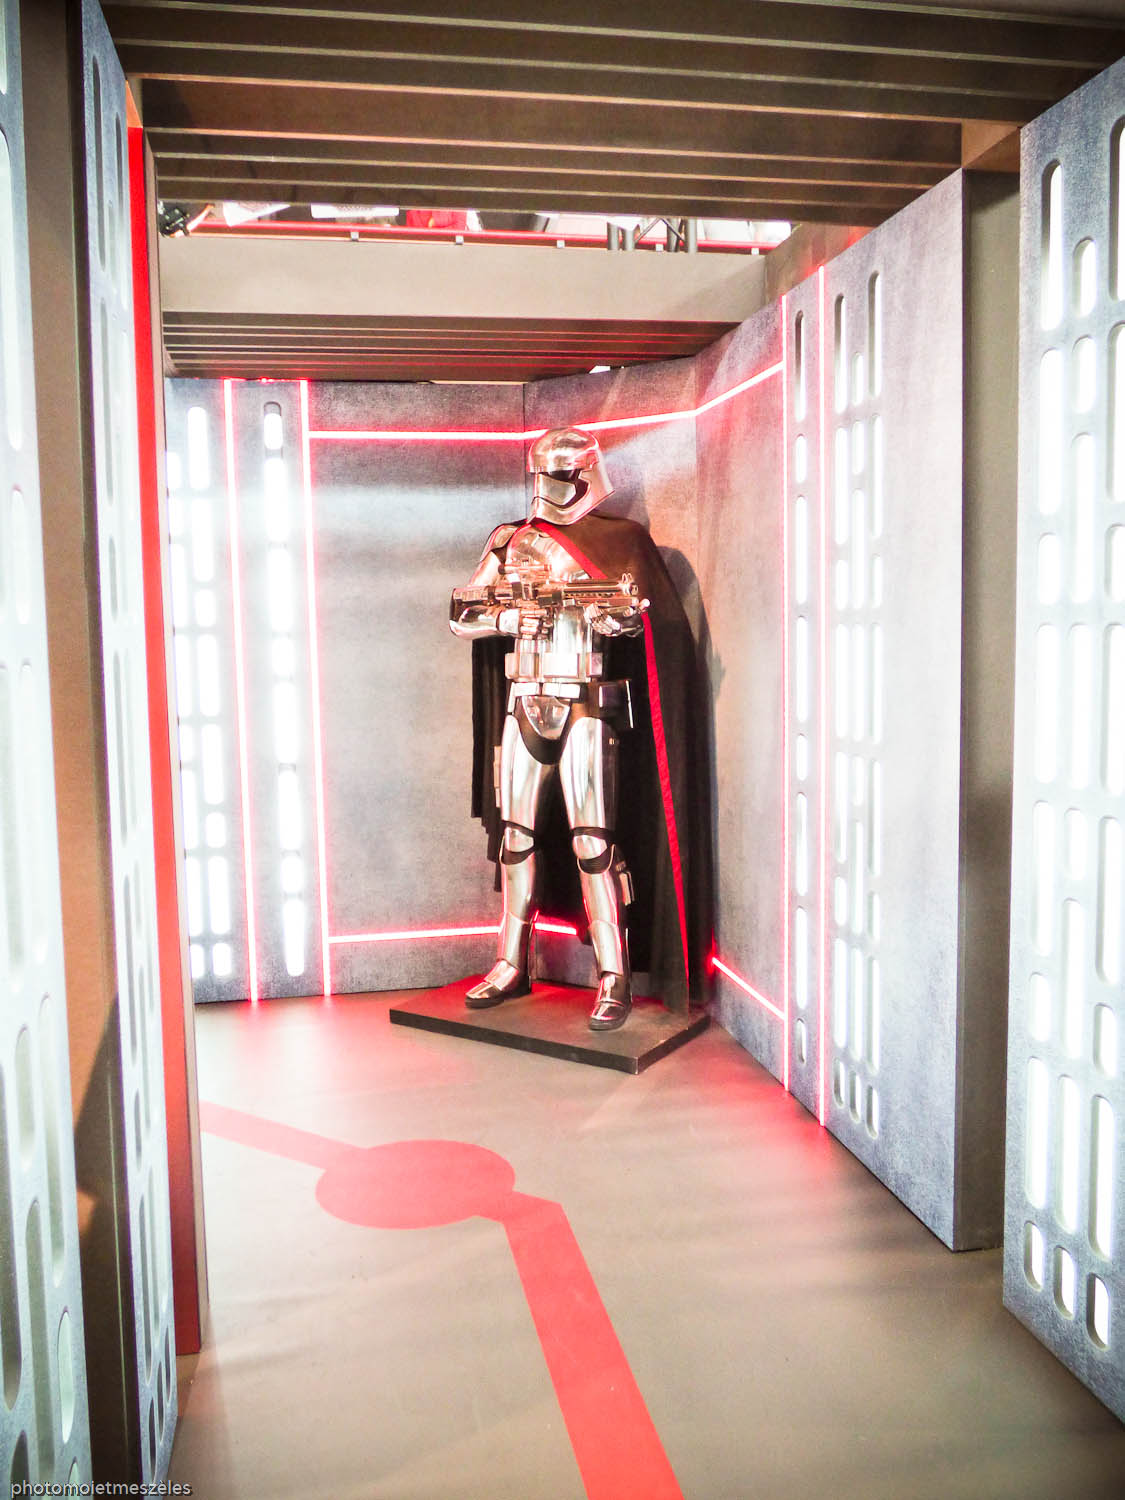 Exposition Star wars paris comic con 2017 (2)